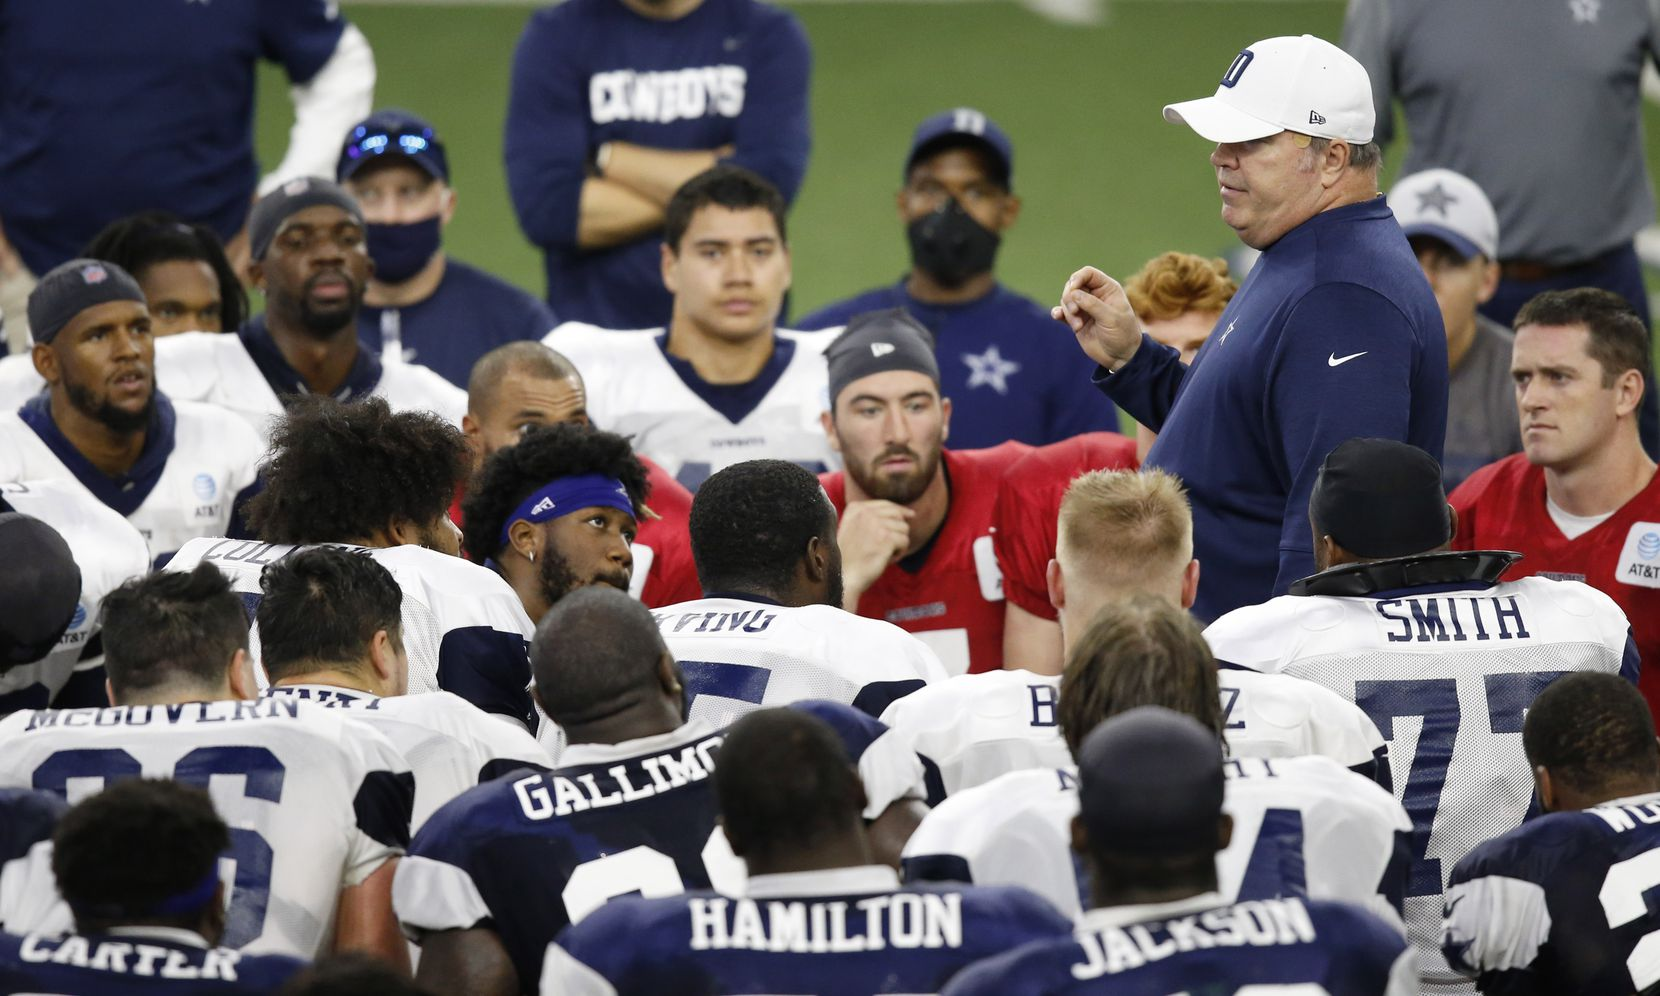 Dallas Cowboys head coach Mike McCarthy talks to the players after practice during training camp at The Star in Frisco, Texas on Thursday, August 27, 2020.